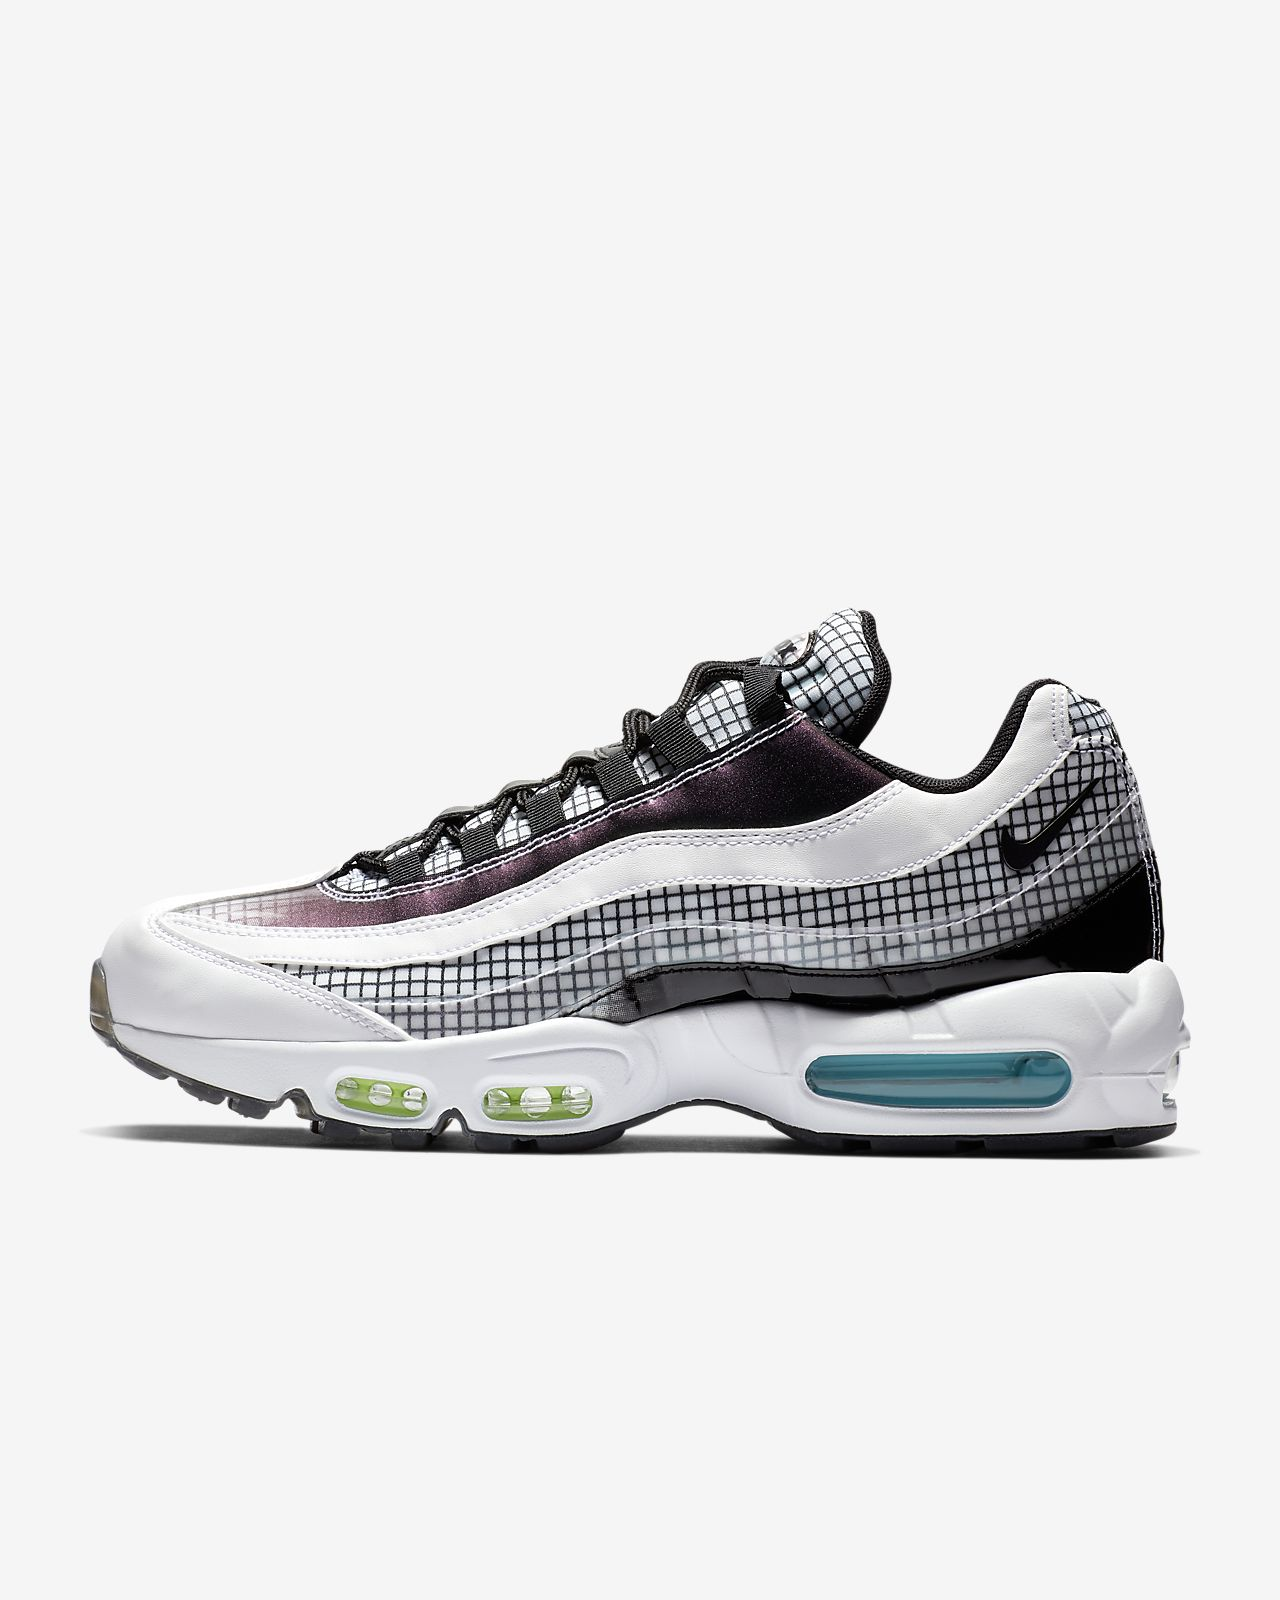 rencontrer 3a1a1 1126c Nike Air Max 95 LV8 Men's Shoe